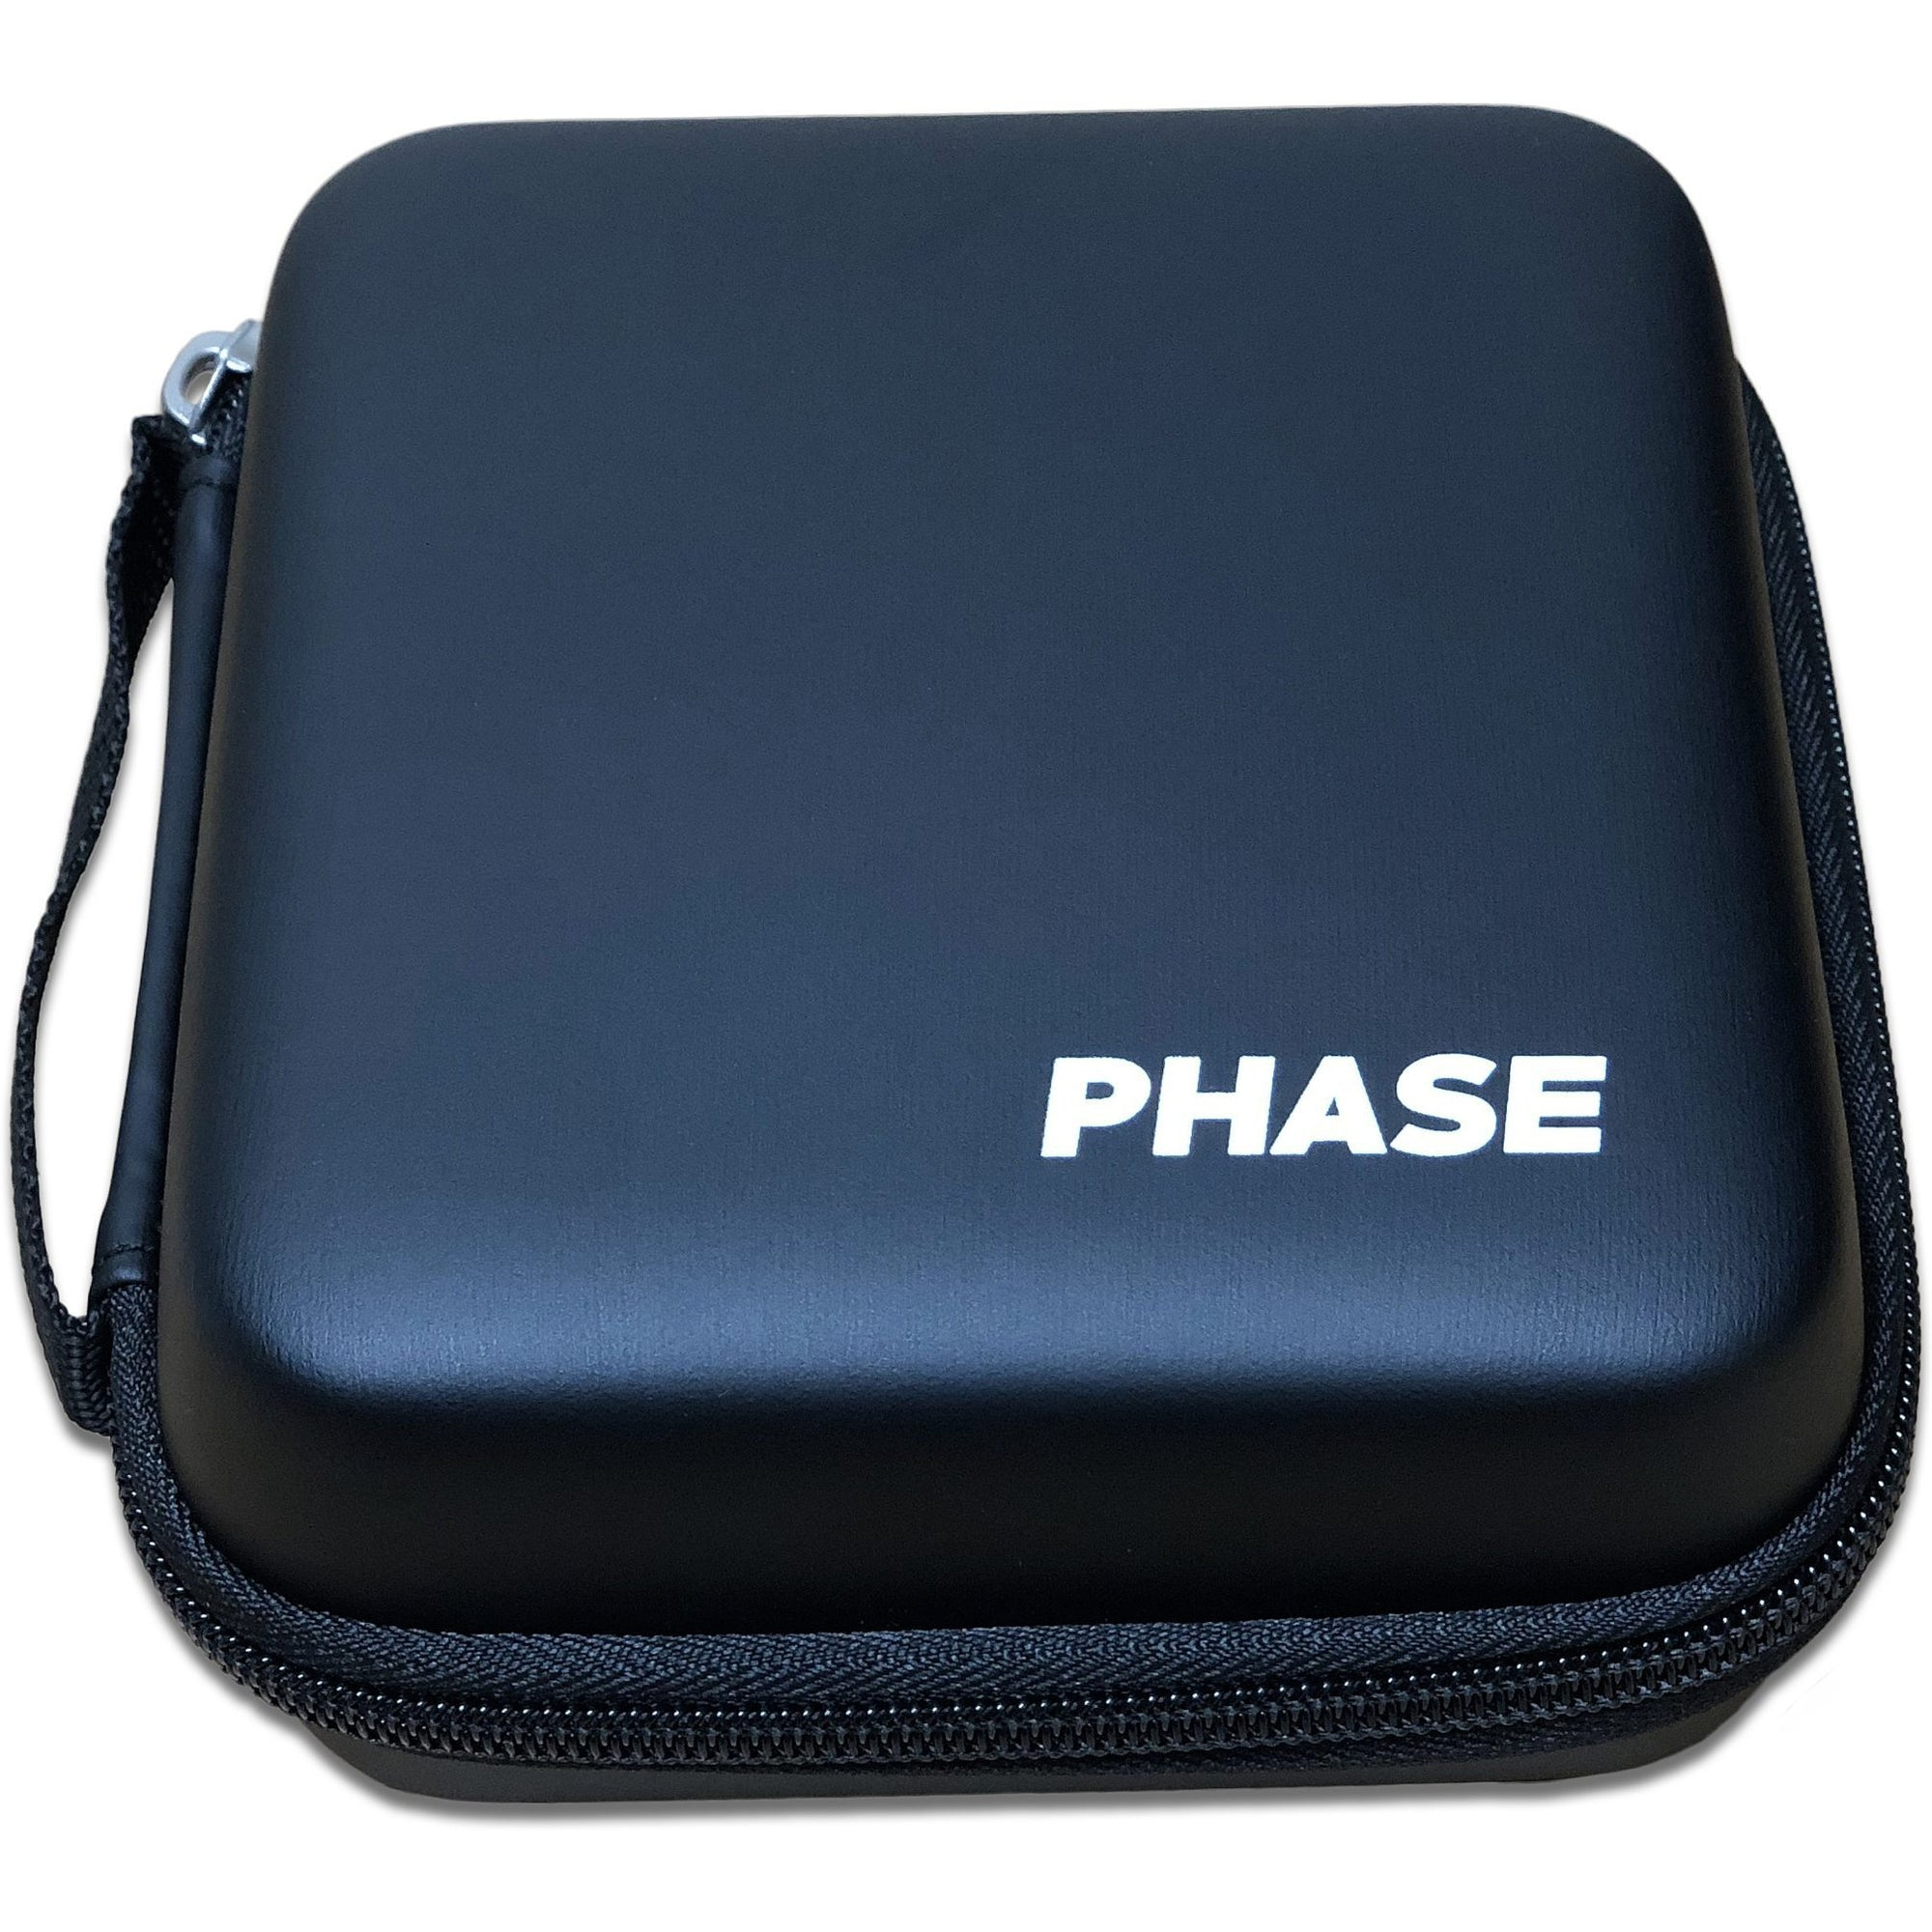 MWM Phase Case for Phase DJ Controllers